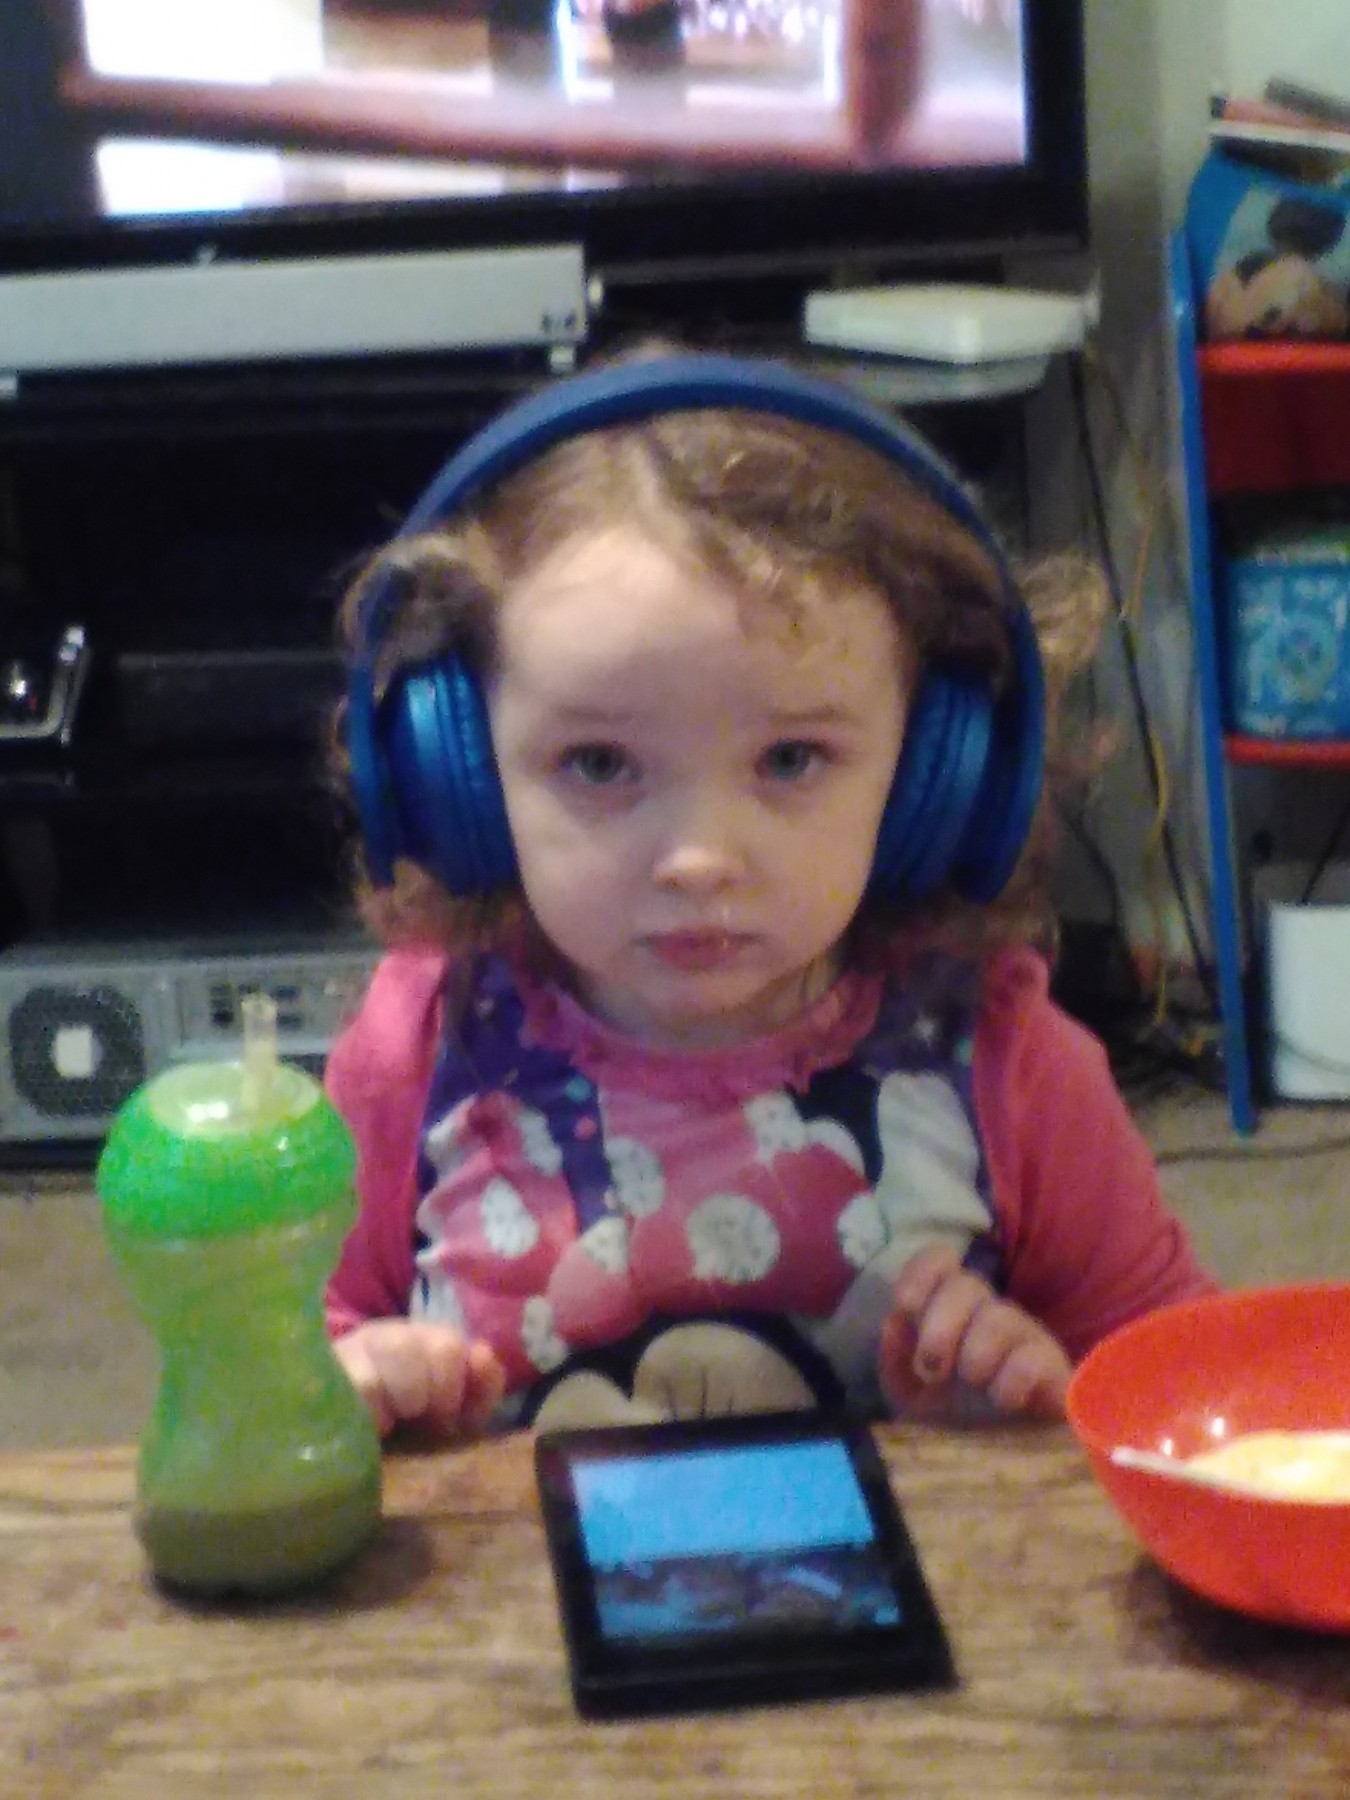 I have been needing a good pair of headphones and I have finally found them.  They are soft, comfortable and aren't too big for my head.  The sound quality is excellent.  Oh and my 3 year old also loves them. I caught her off guard in t